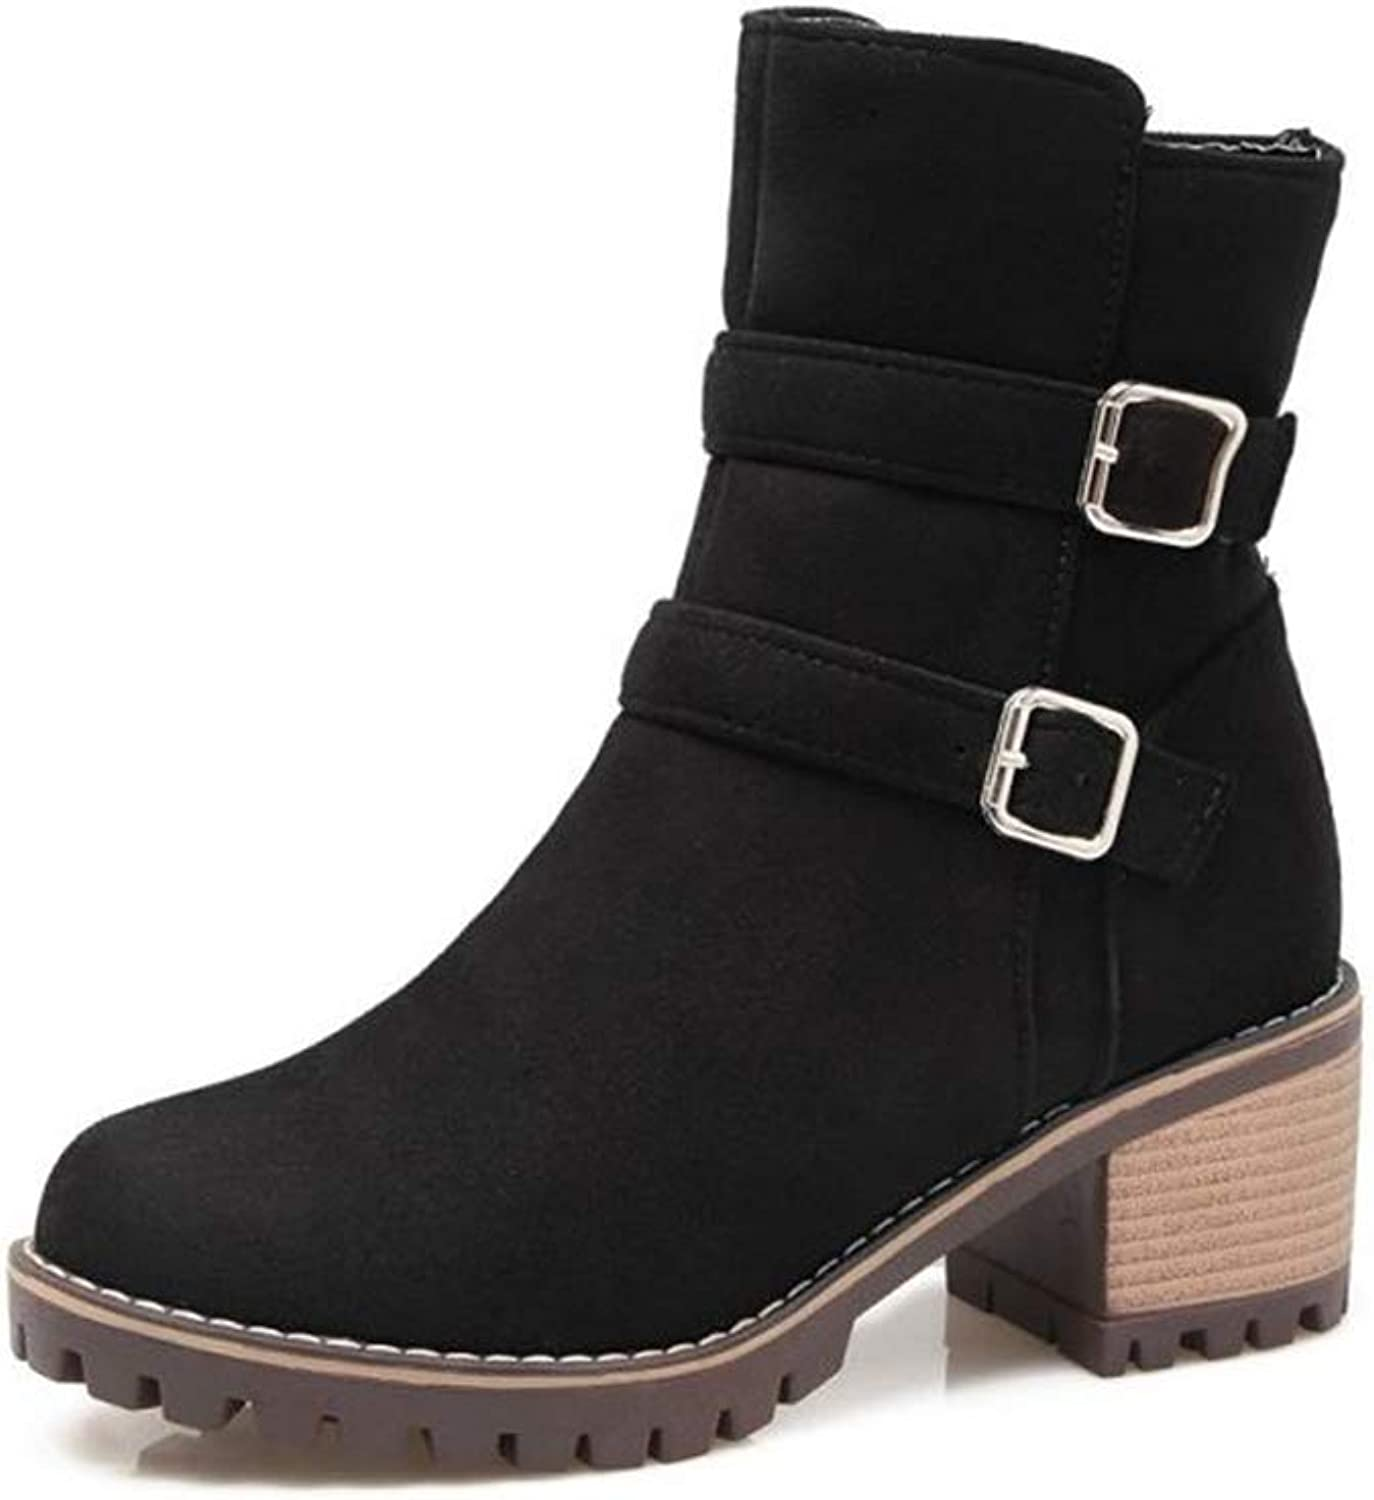 Fashion Women's Comfort Side Zipper Platform Chunky High Heel Ankle Boots